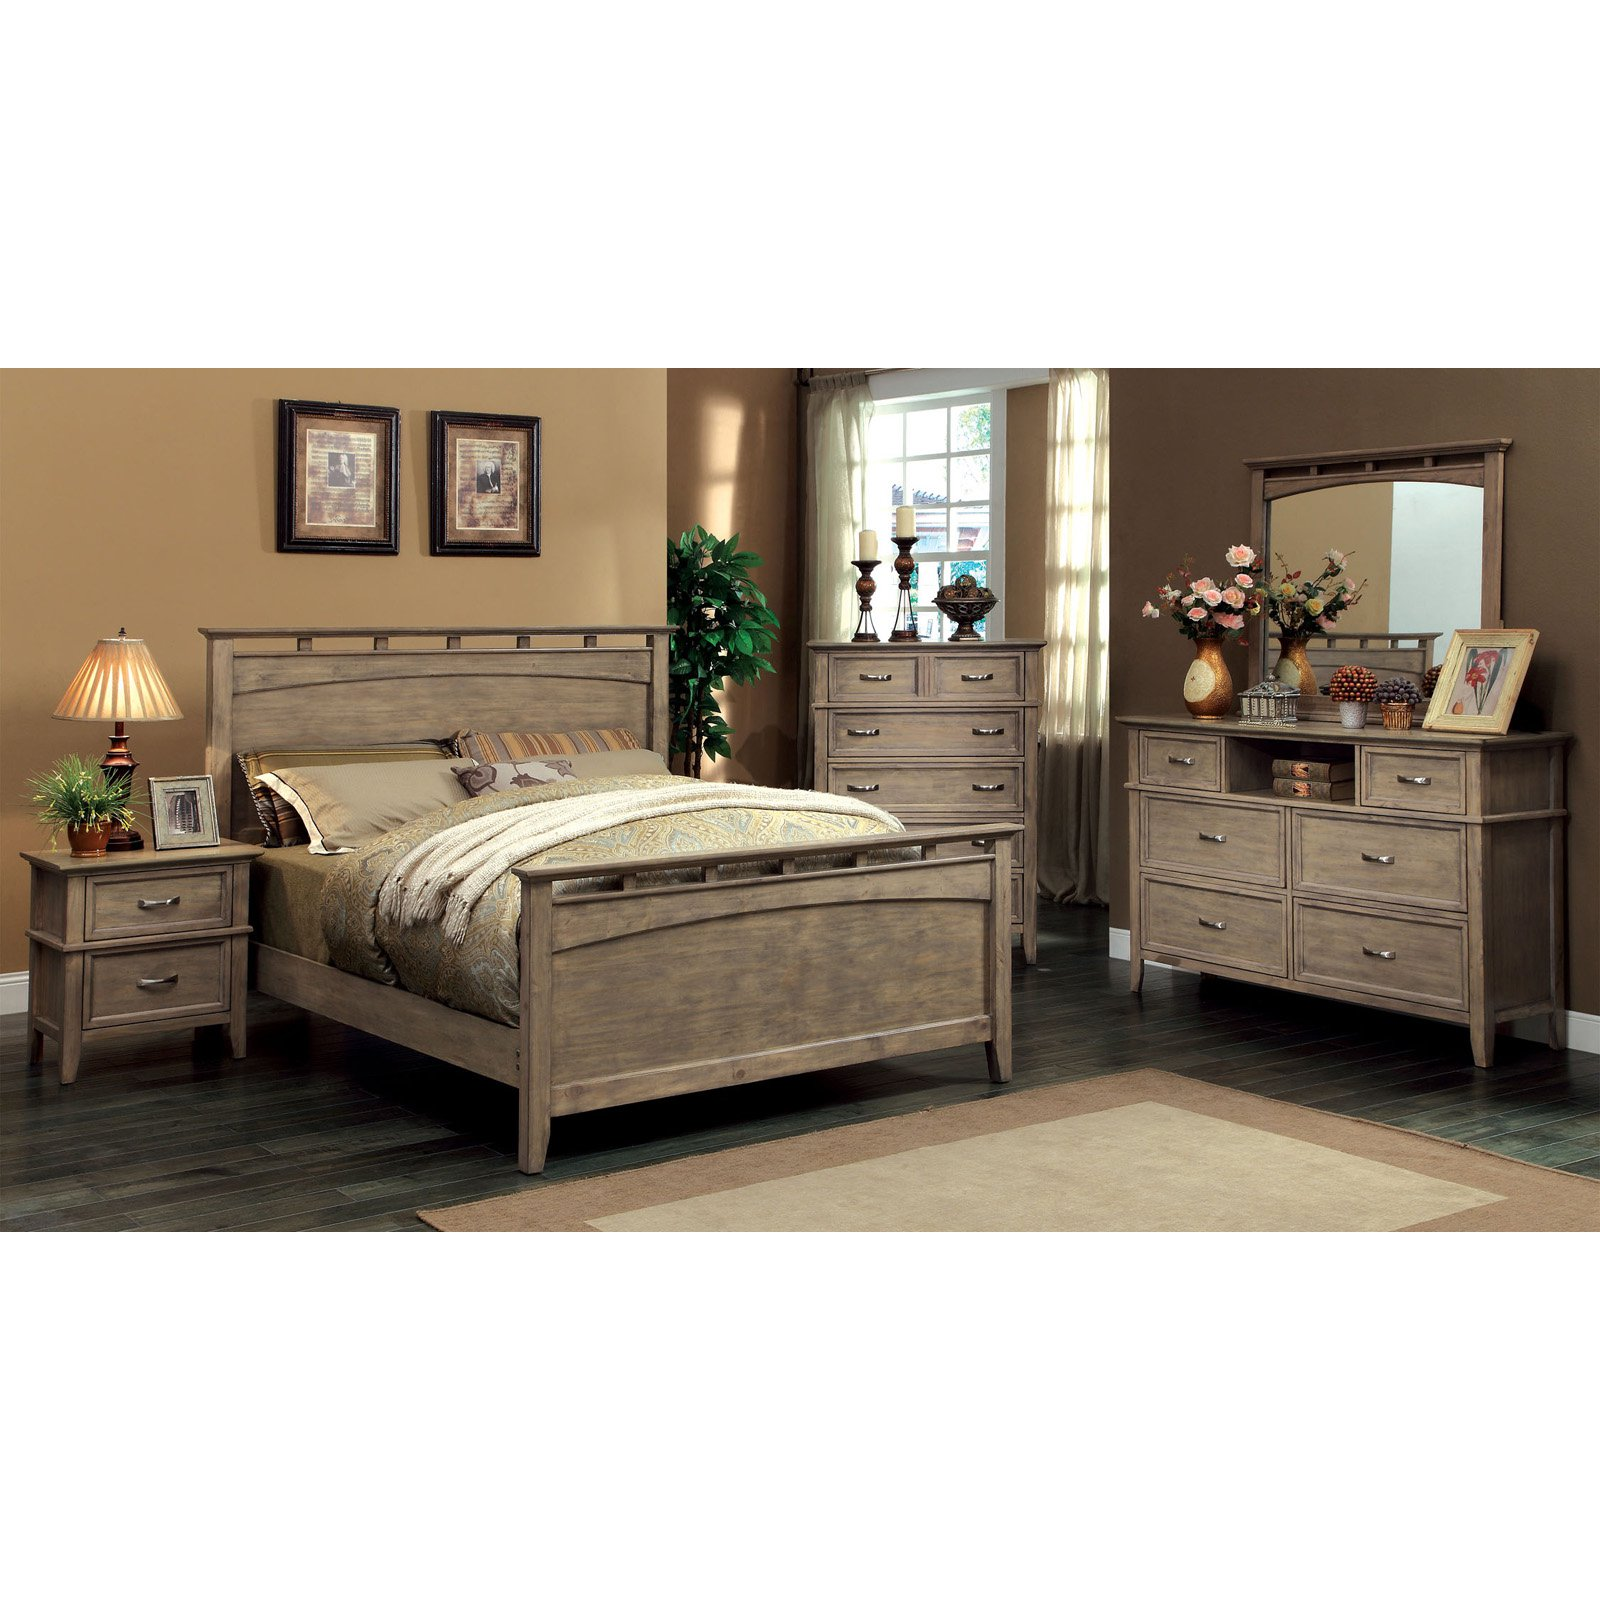 Furniture Of America Tarpa Collection Platform Bed   Weathered Oak    Walmart.com